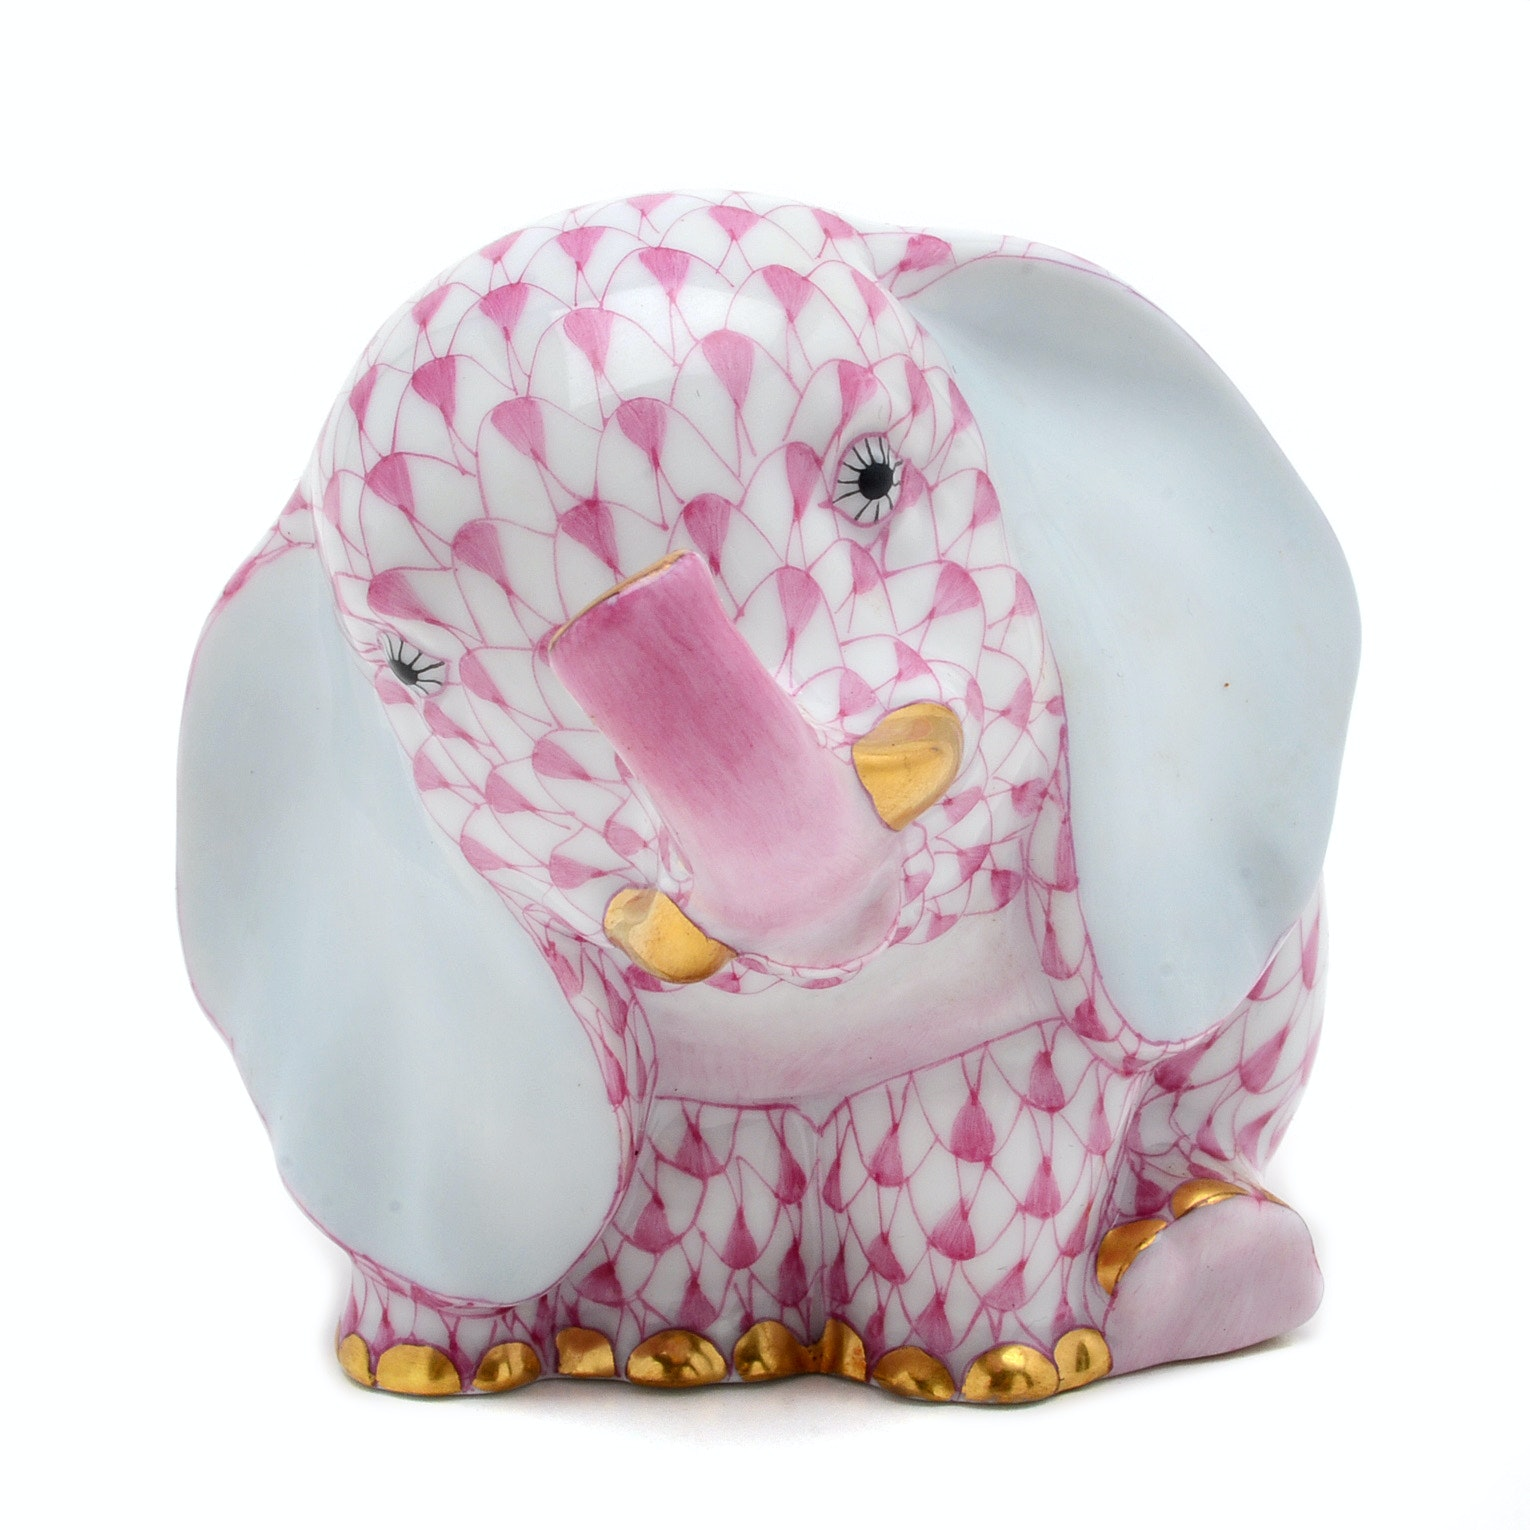 Herend Hungary Baby Elephant Figurine in Pink Fishnet, First Edition